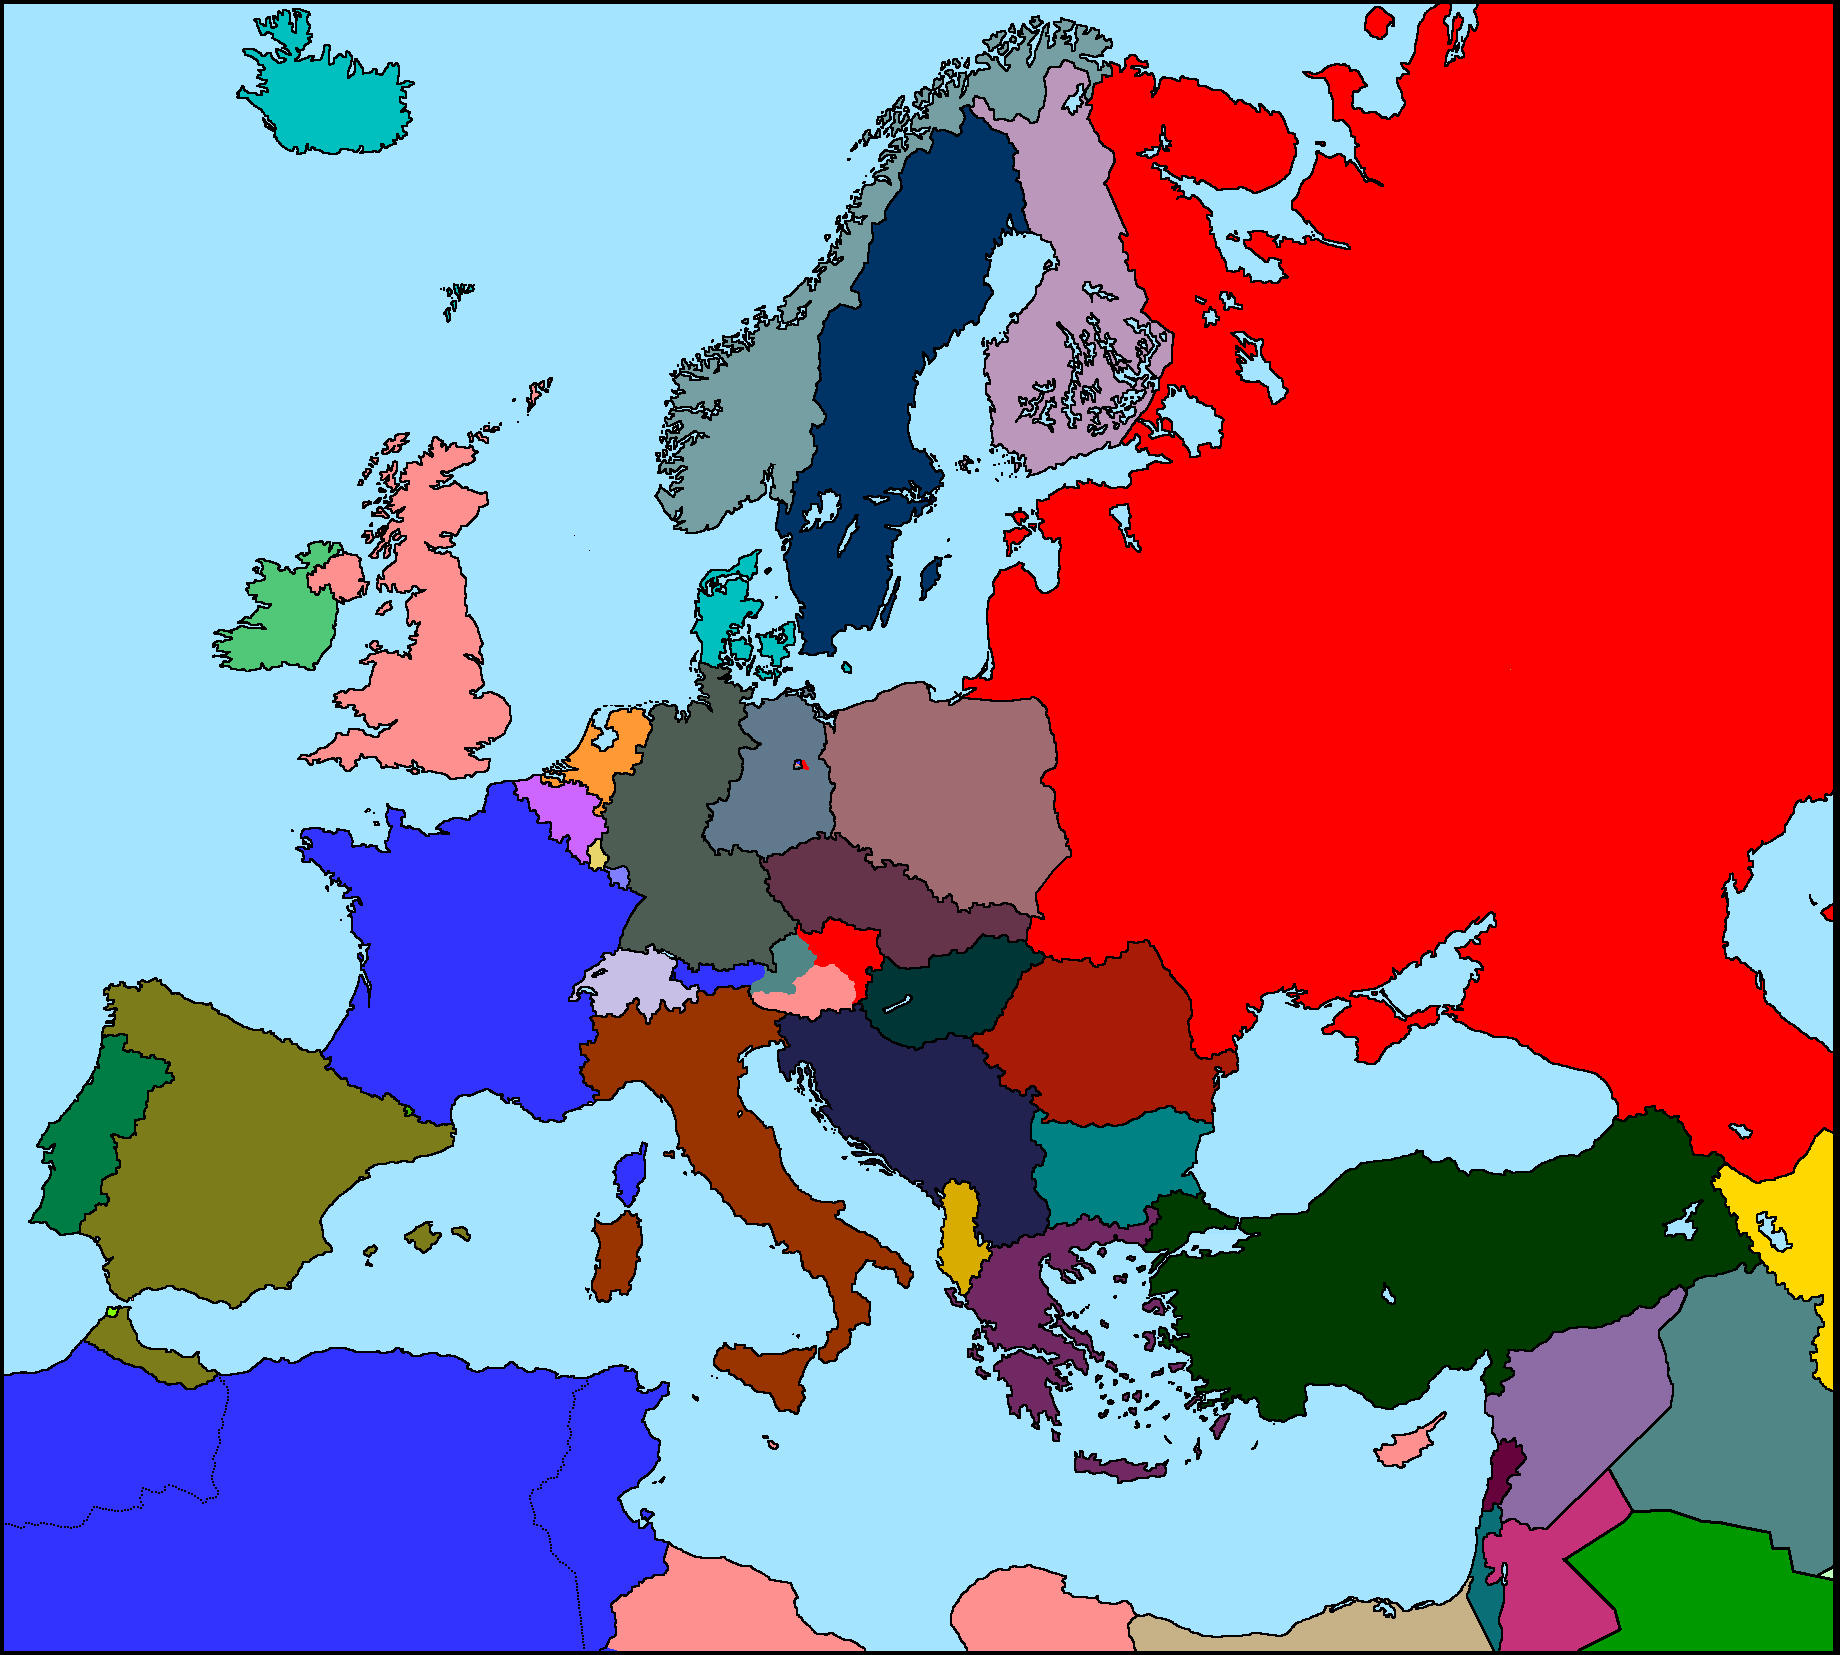 Map Of Europe 1950 Map of Europe 1950 v1 by xGeograd on DeviantArt